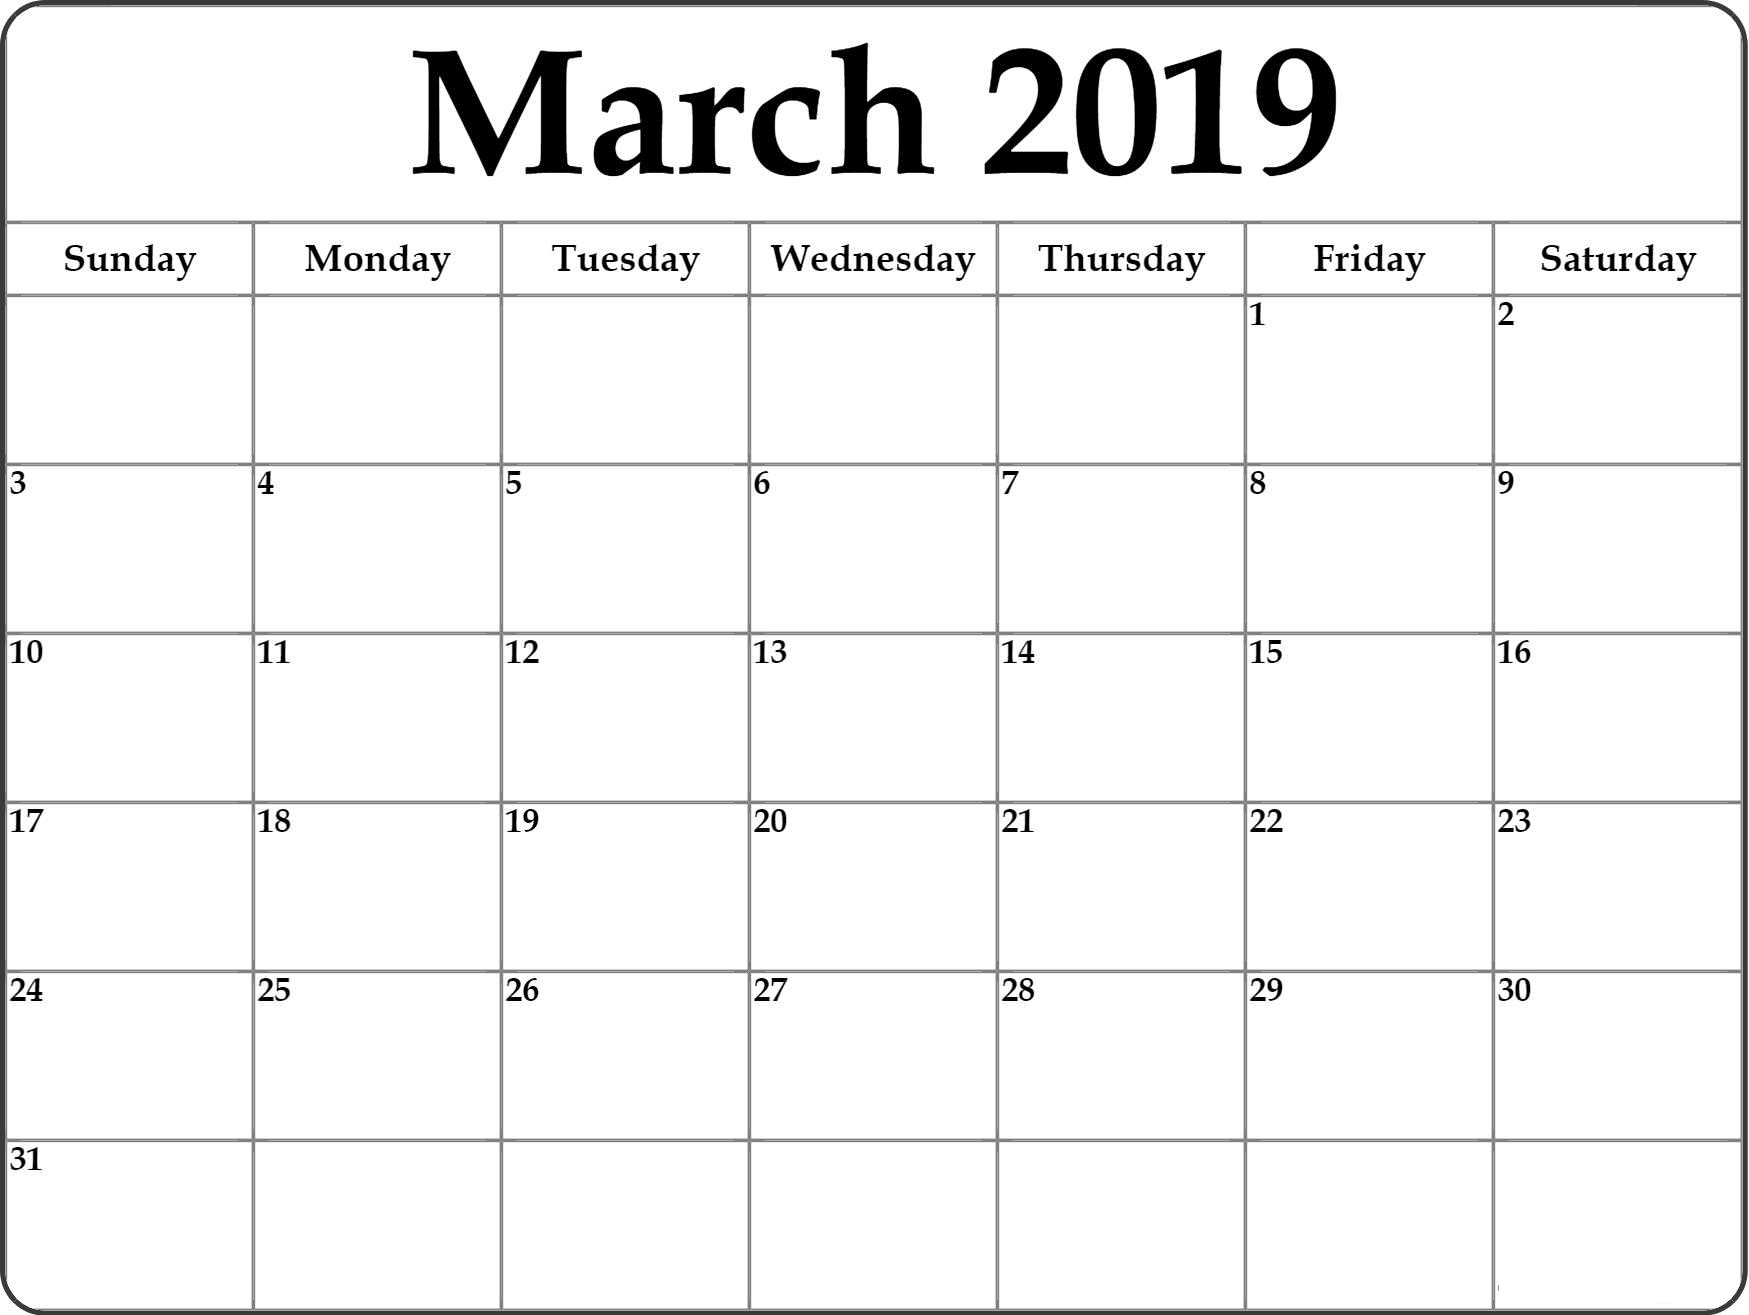 March 2019 Calendar Printable Template - Free Printable Calendar with regard to March Calendar Printable Template